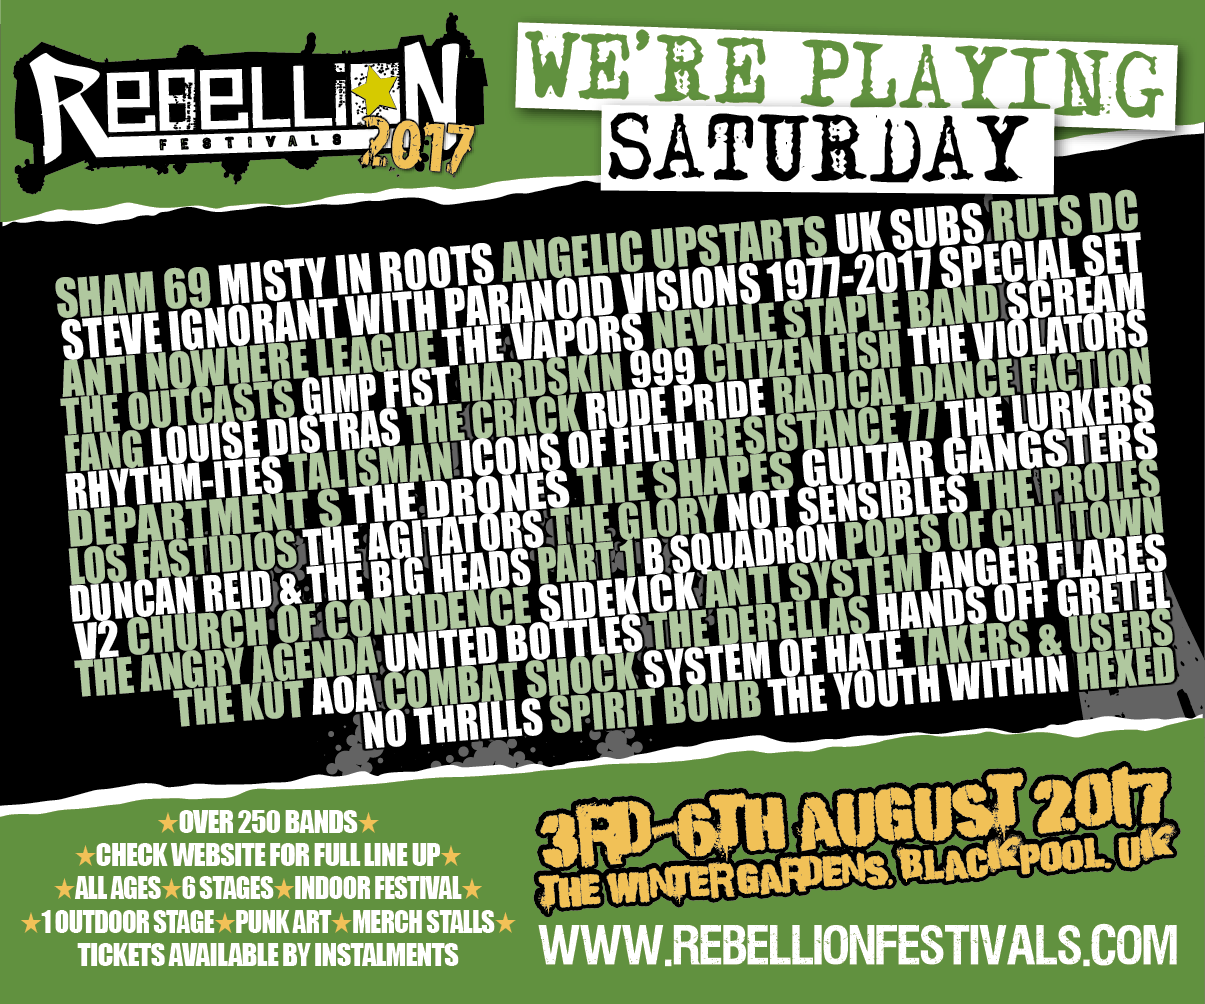 Rebellion Festival 2017 Flyer